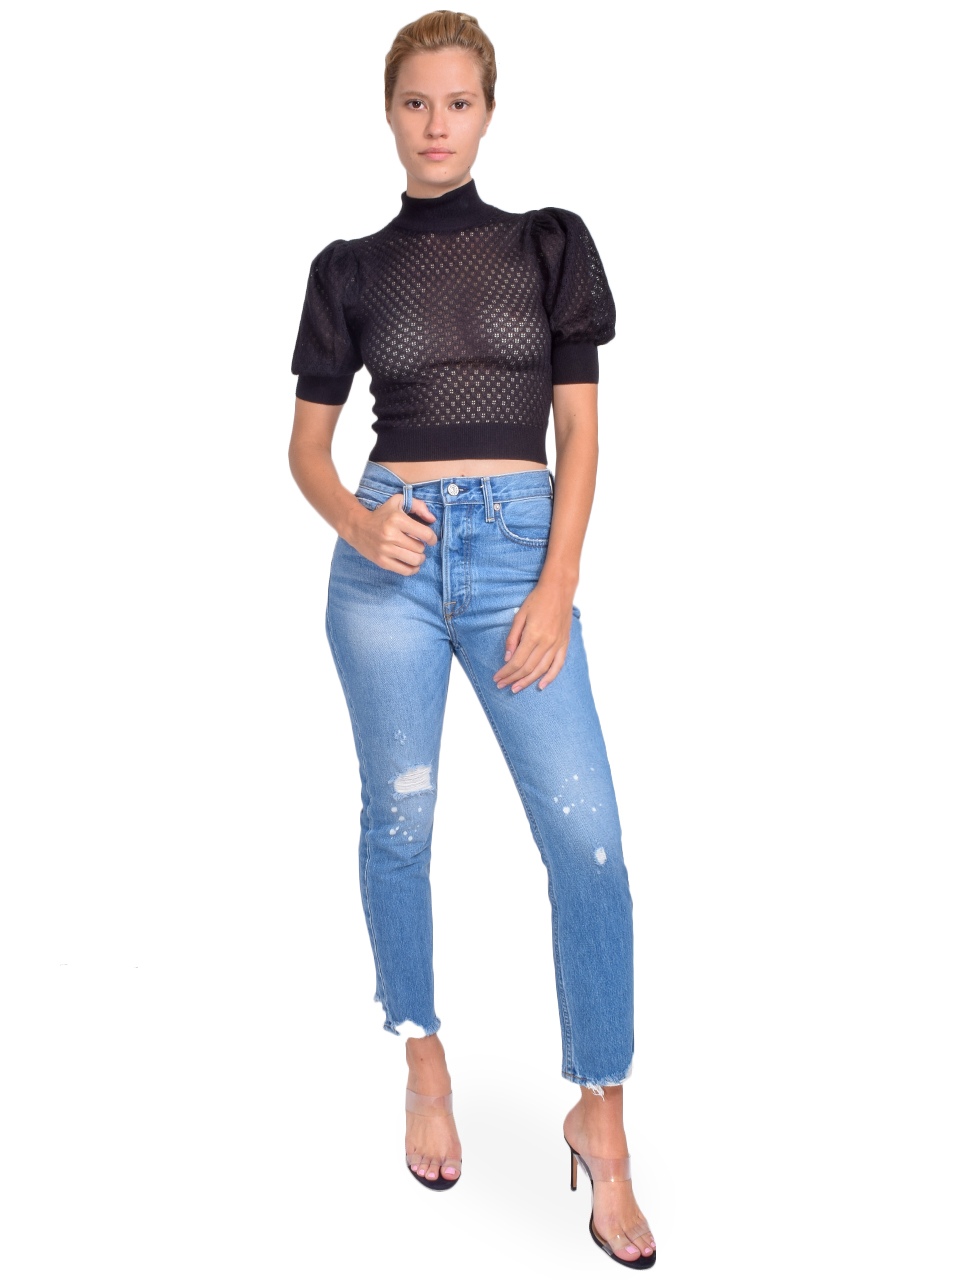 NO END Newport Slim Straight Cropped Jean in Beastie Full Outfit